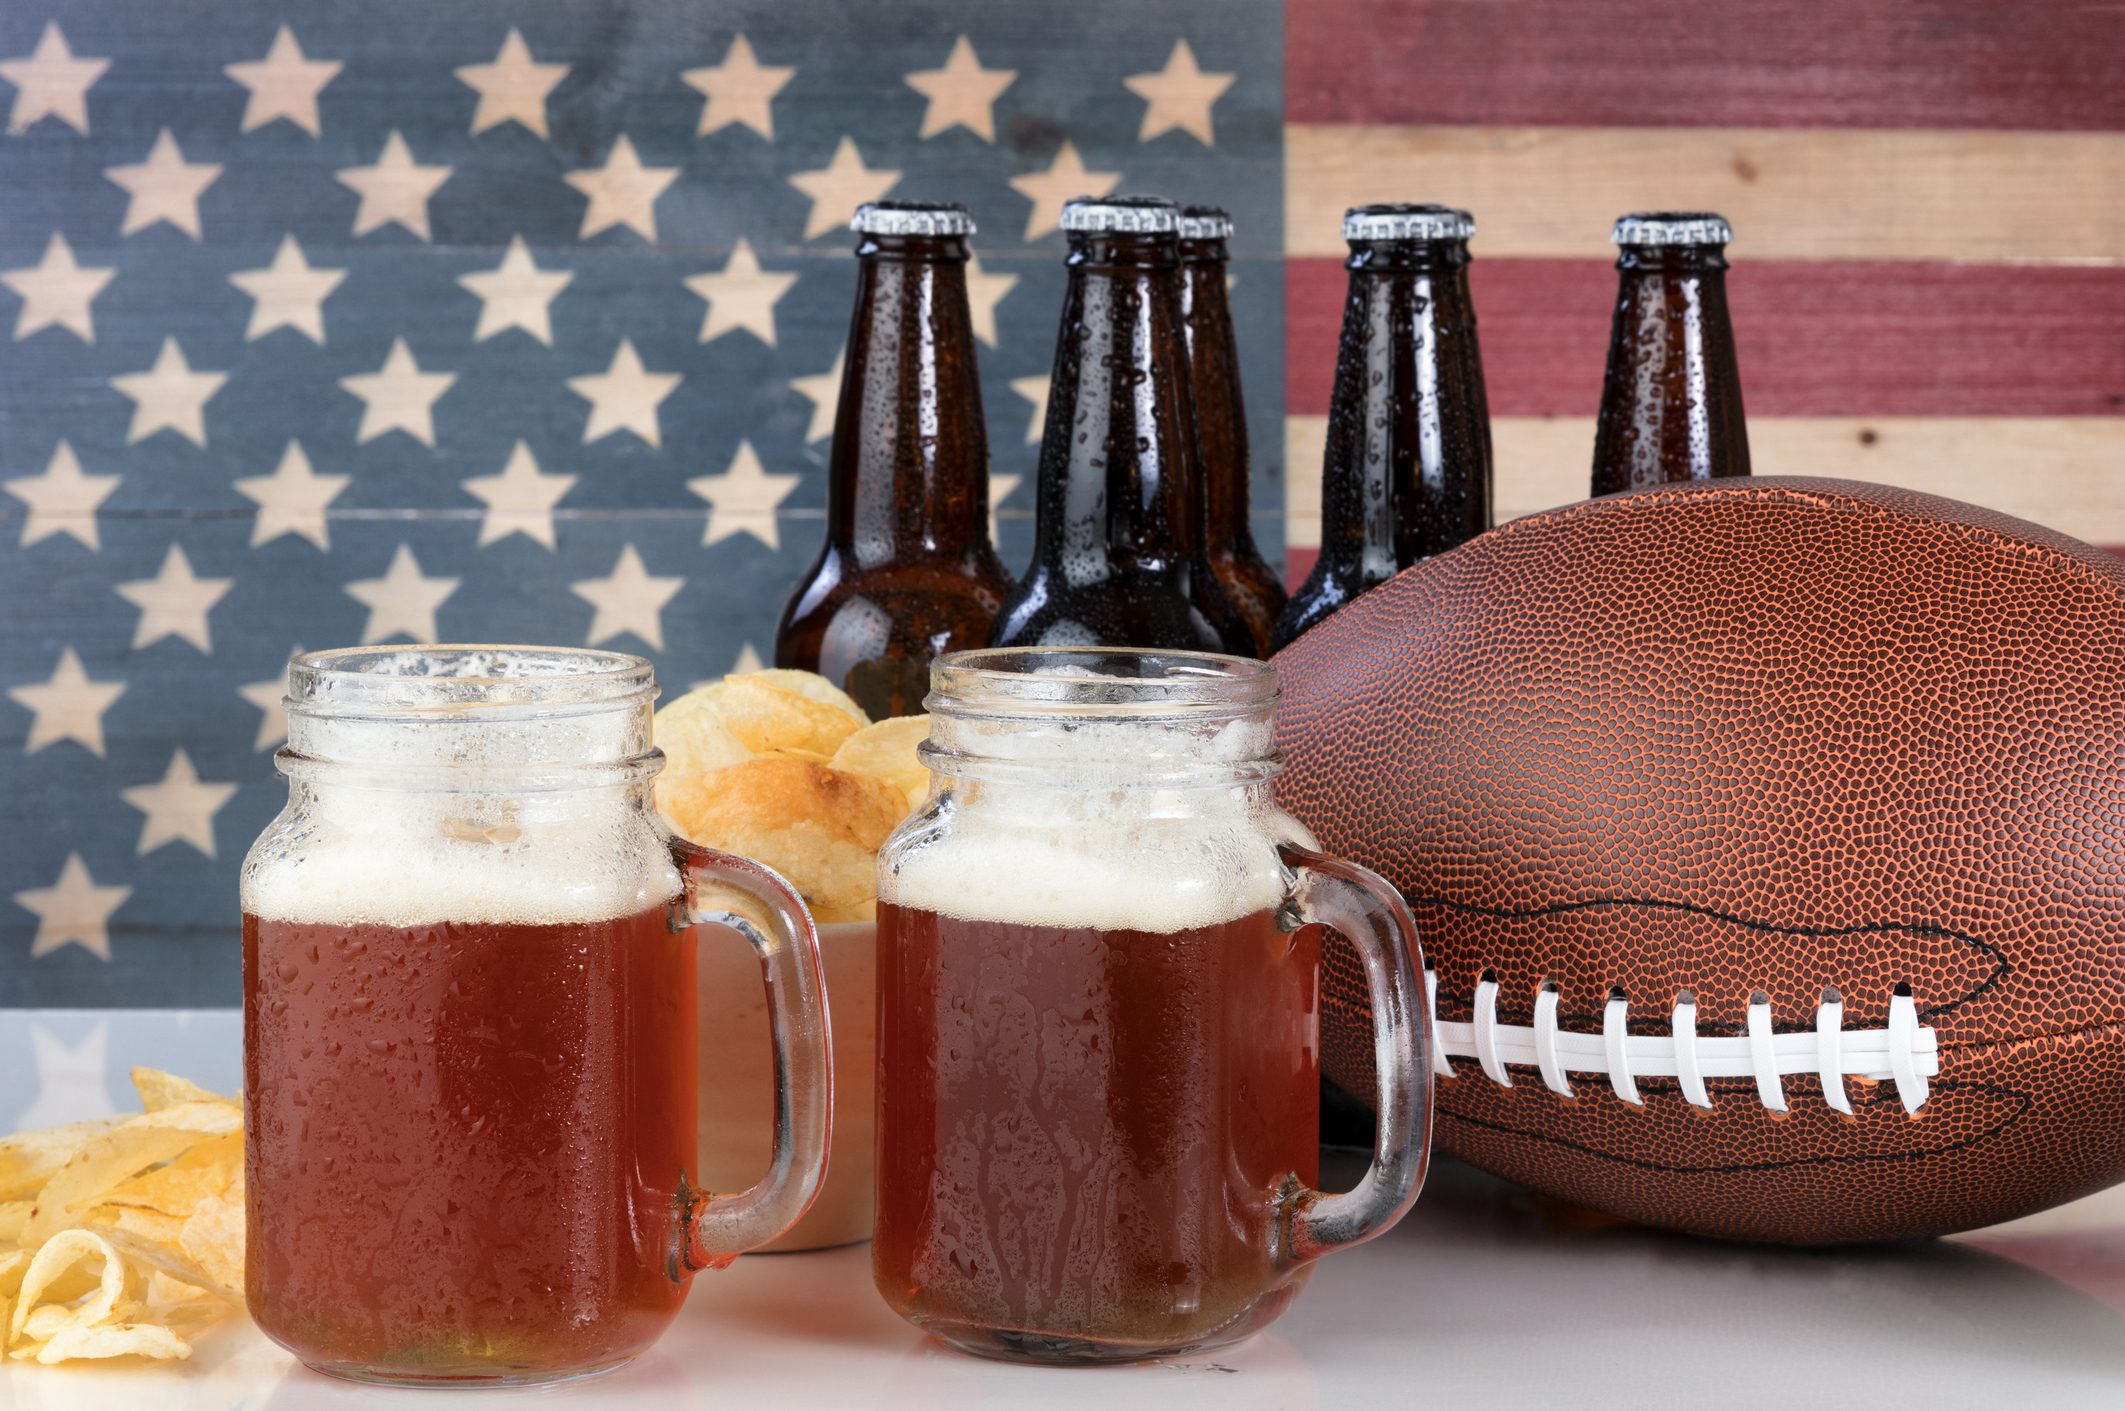 Beer in bottles and glasses and a football